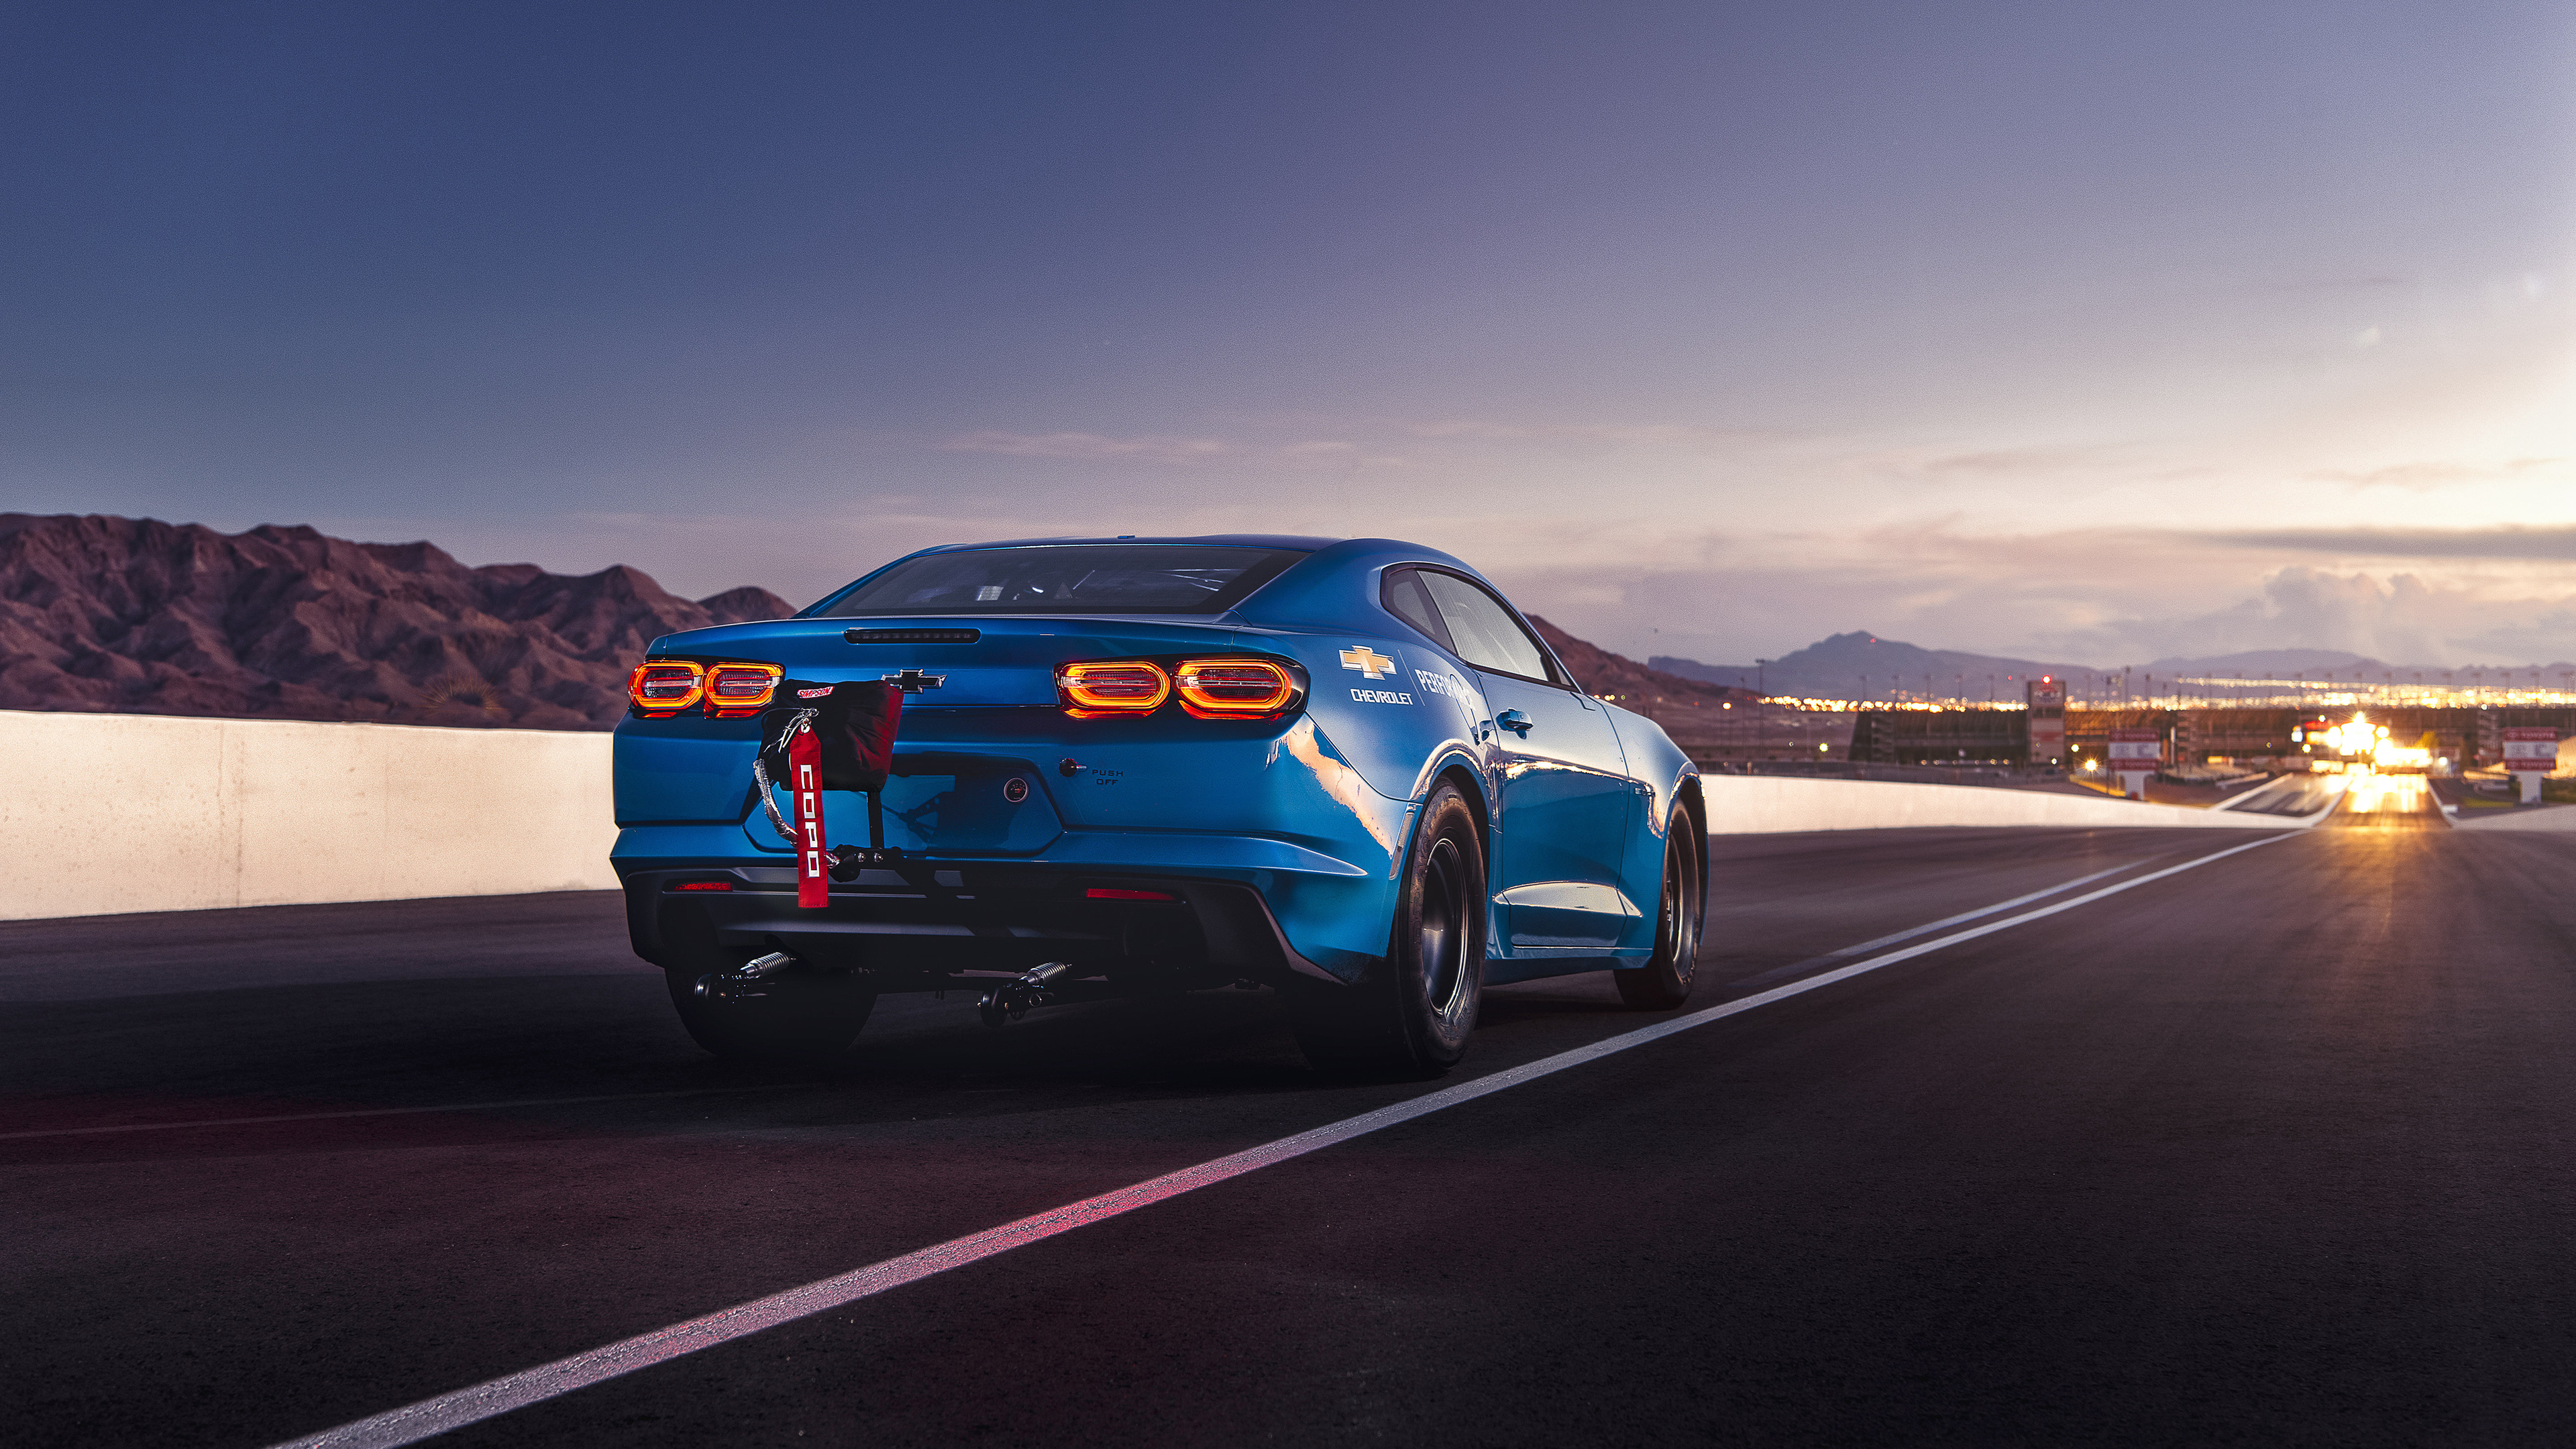 chevrolet ecopo camaro concept 2018 rear 1541969138 - Chevrolet ECOPO Camaro Concept 2018 Rear - hd-wallpapers, chevrolet wallpapers, chevrolet camaro wallpapers, cars wallpapers, 4k-wallpapers, 2018 cars wallpapers